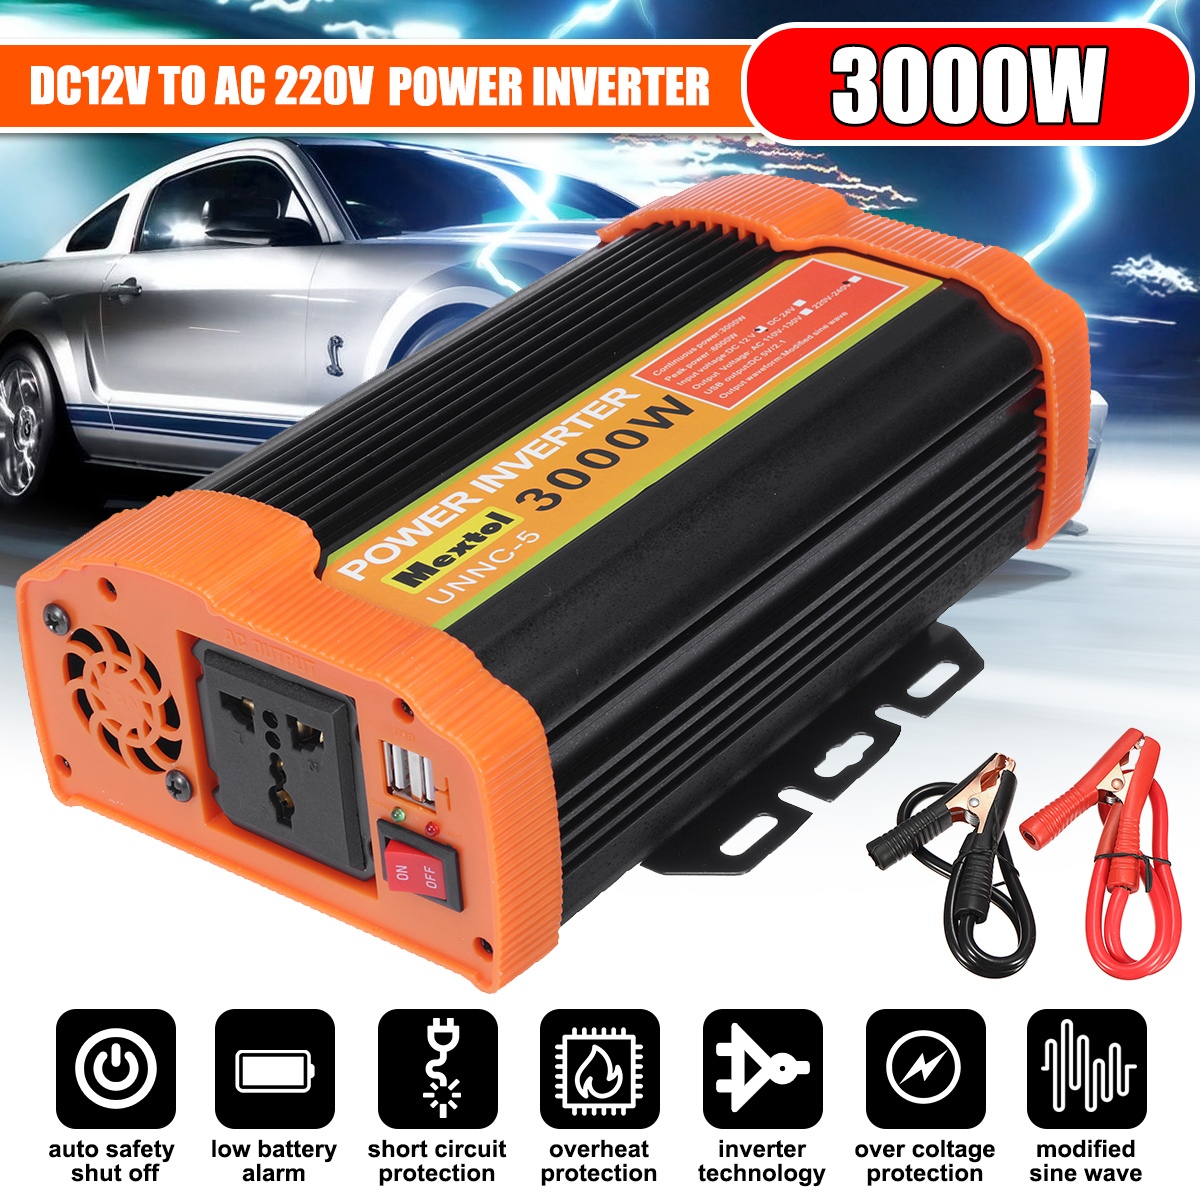 Dual USB Max 6000 Watts Solar Power Inverter DC 12 V To AC 220 Volt Car Adapter Charge Converter Modified Sine Wave Transformer